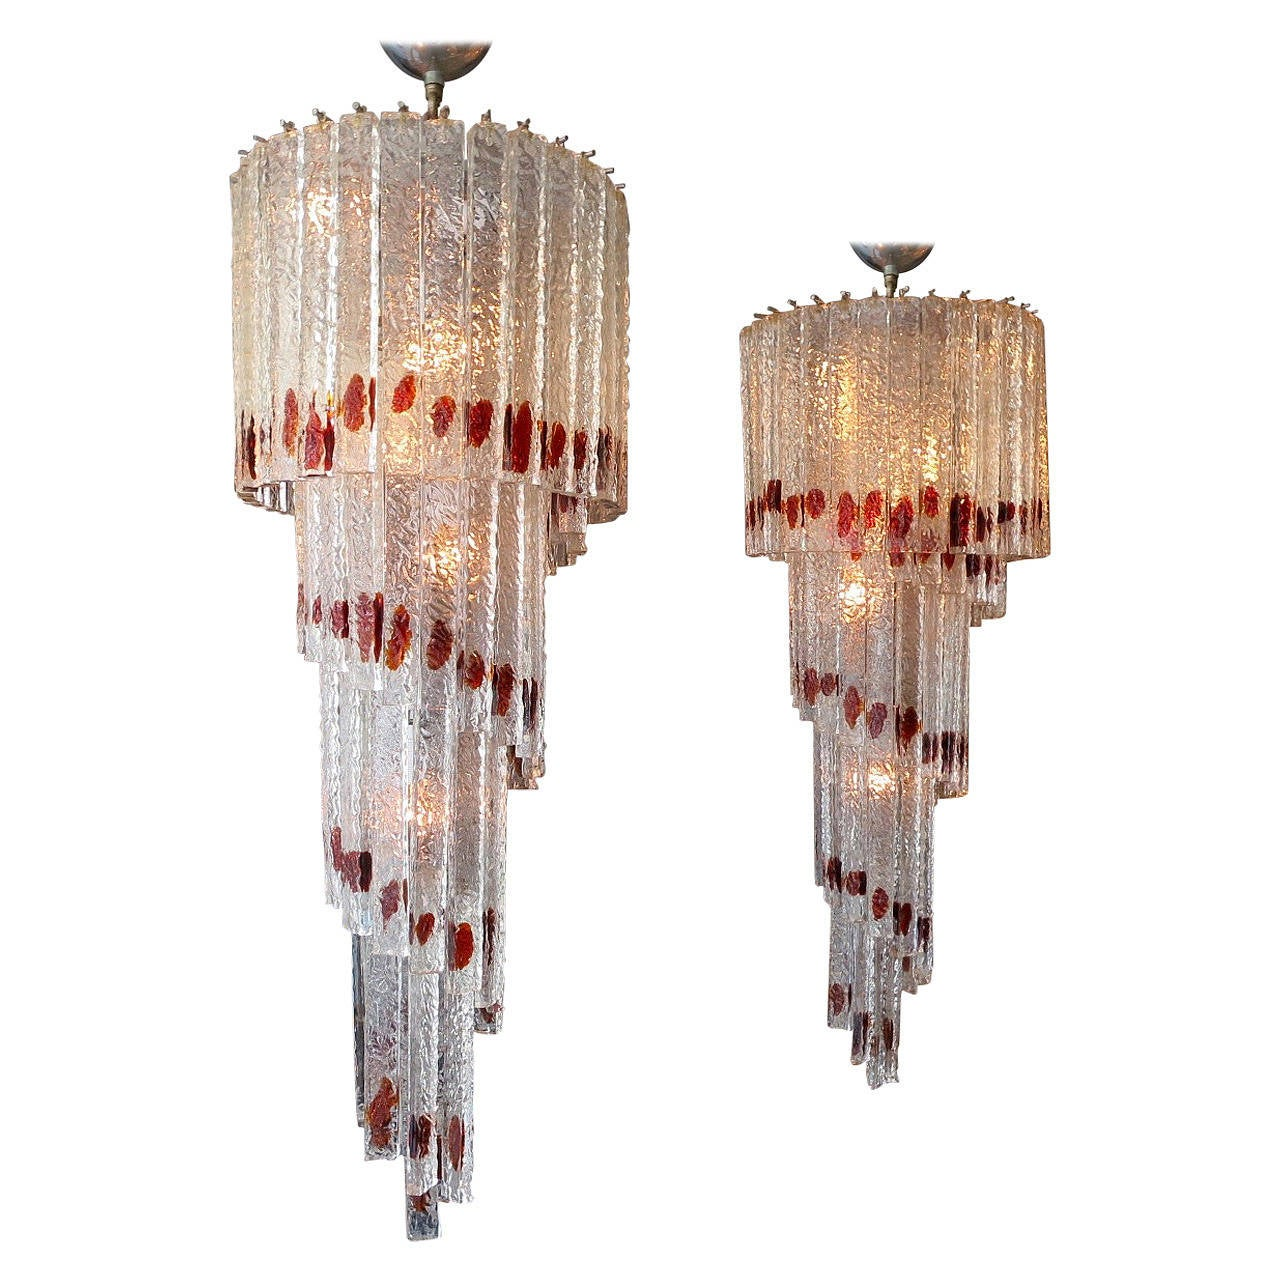 Murano Spiral Chandelier: Pair Of Italian Murano Glass Spiral Chandeliers For Sale